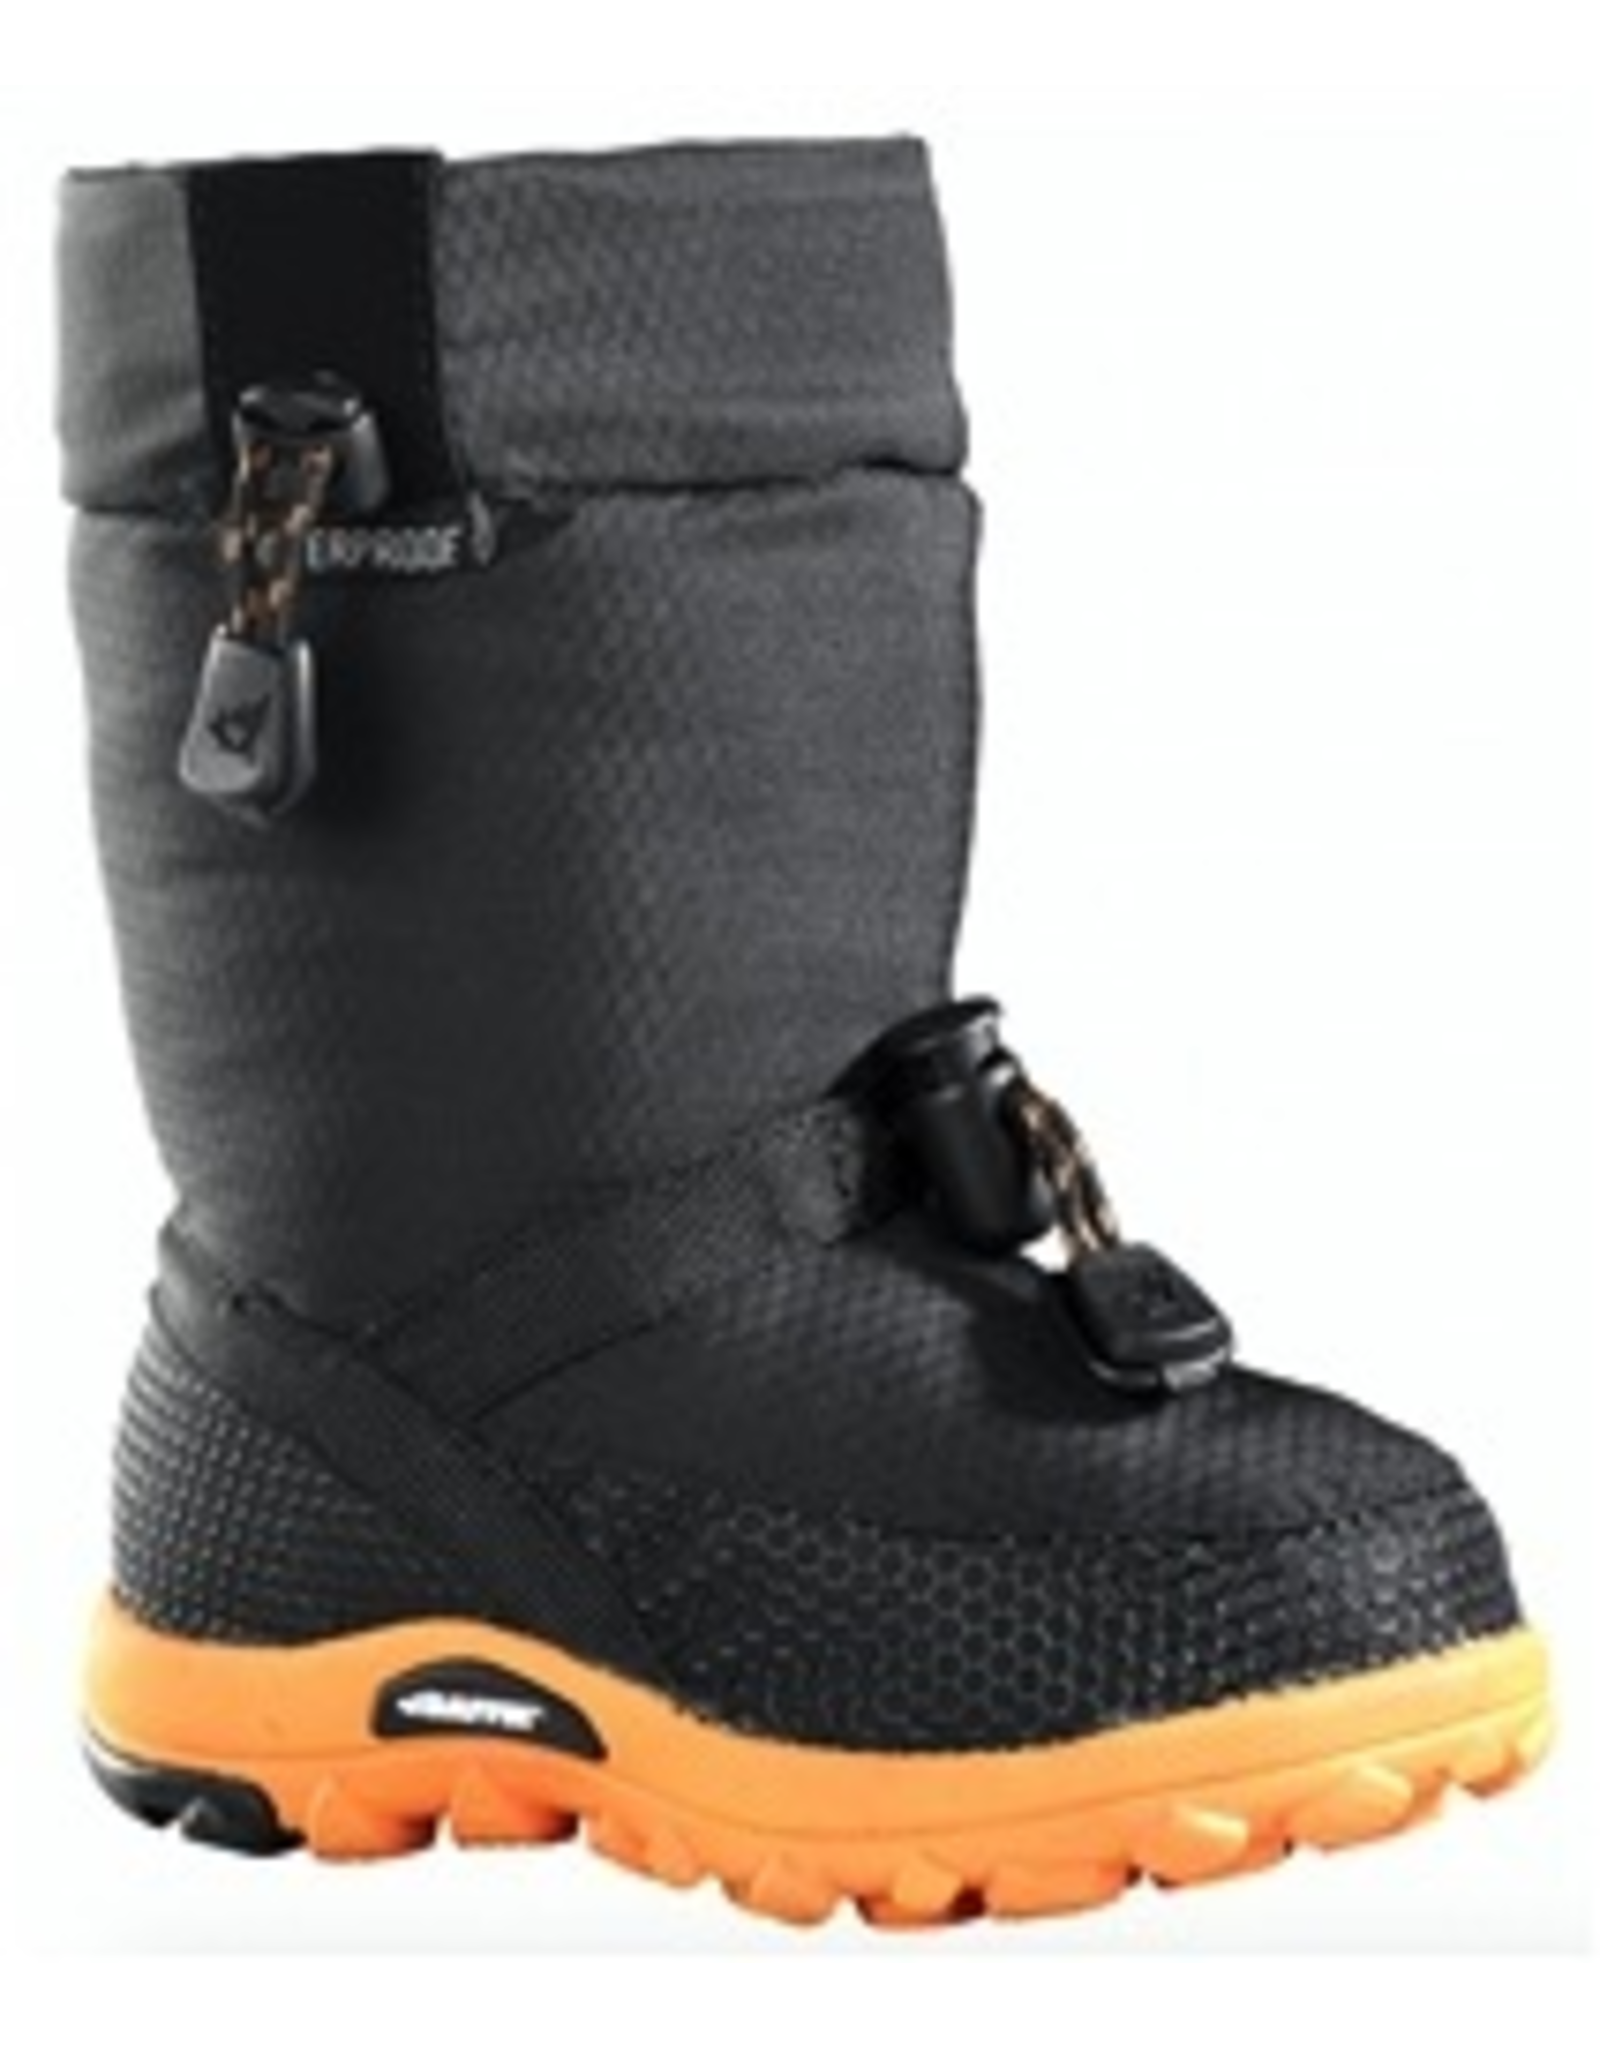 Baffin Baffin Youth Ease Boot